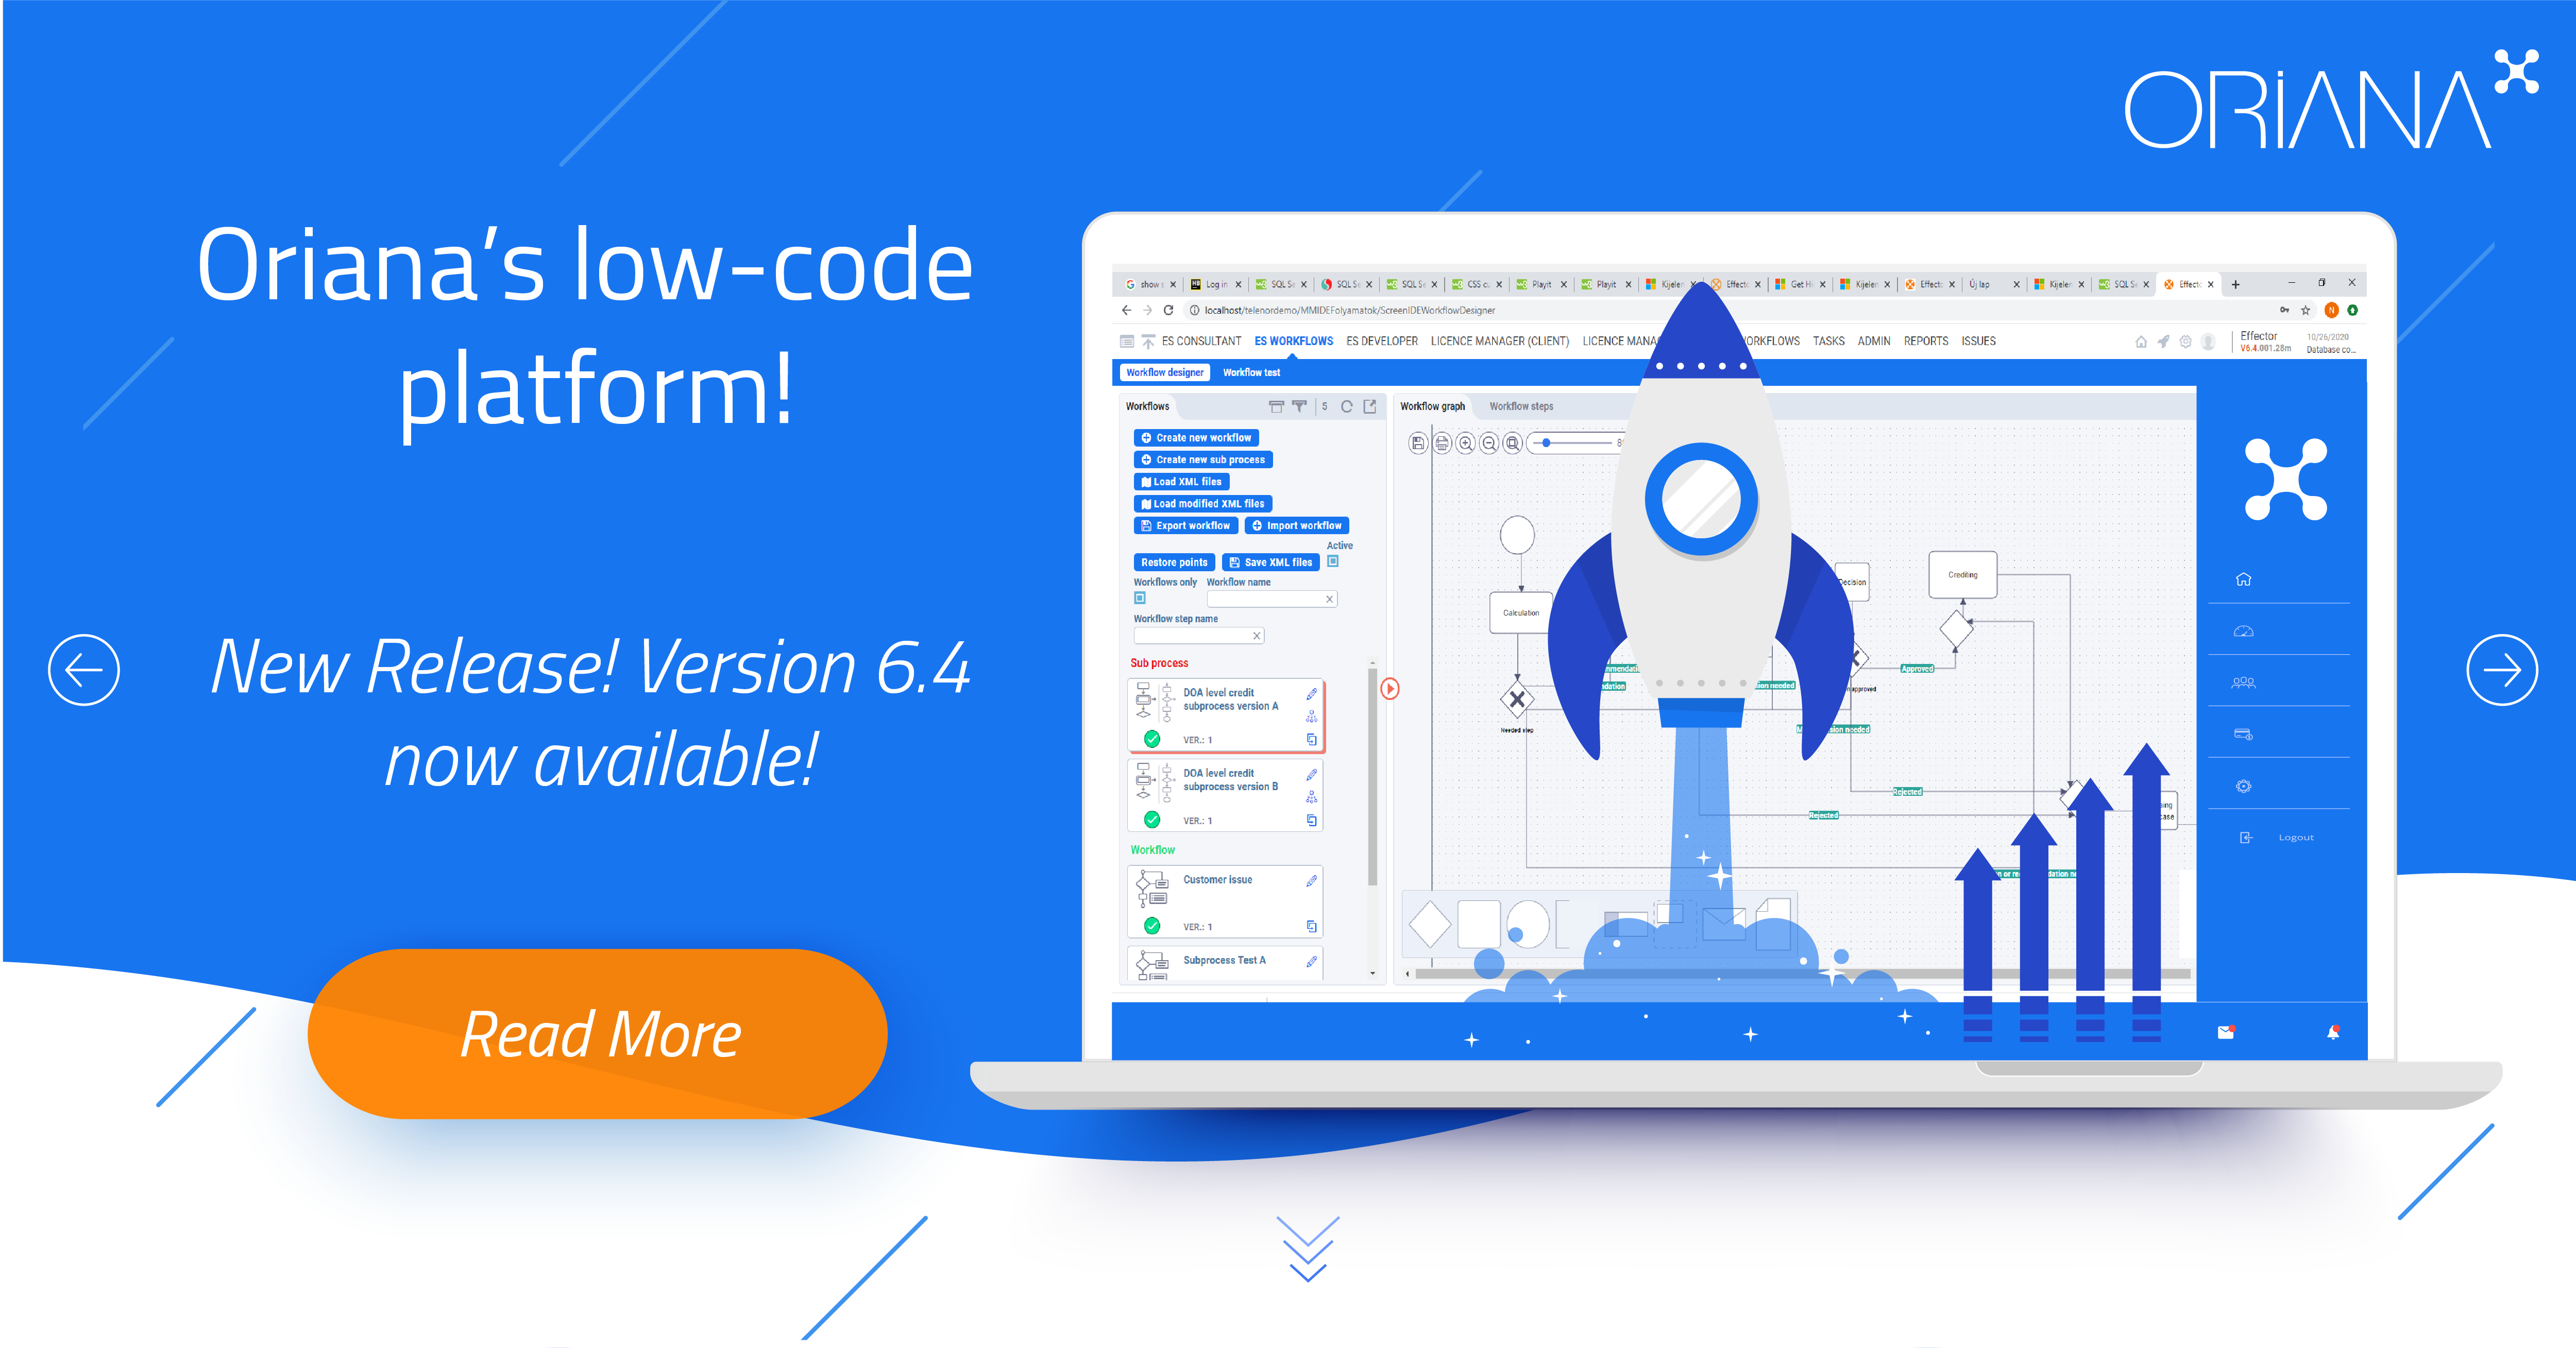 The updated version of Oriana's low-code platform is here! WebAPI, RPA, No-code and many more in the 6.4 version